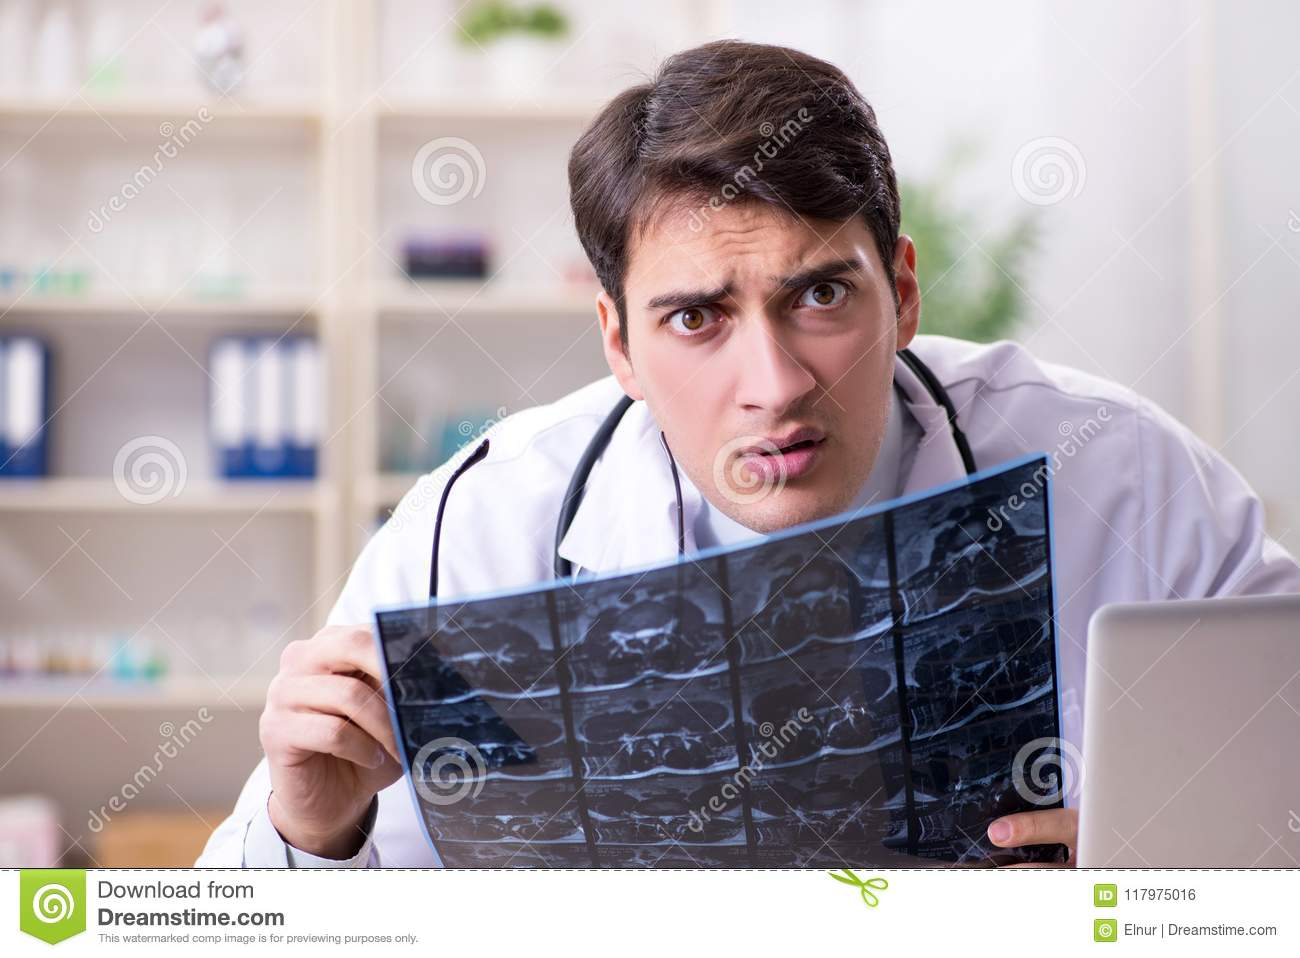 The young doctor looking at x-ray images in clinic